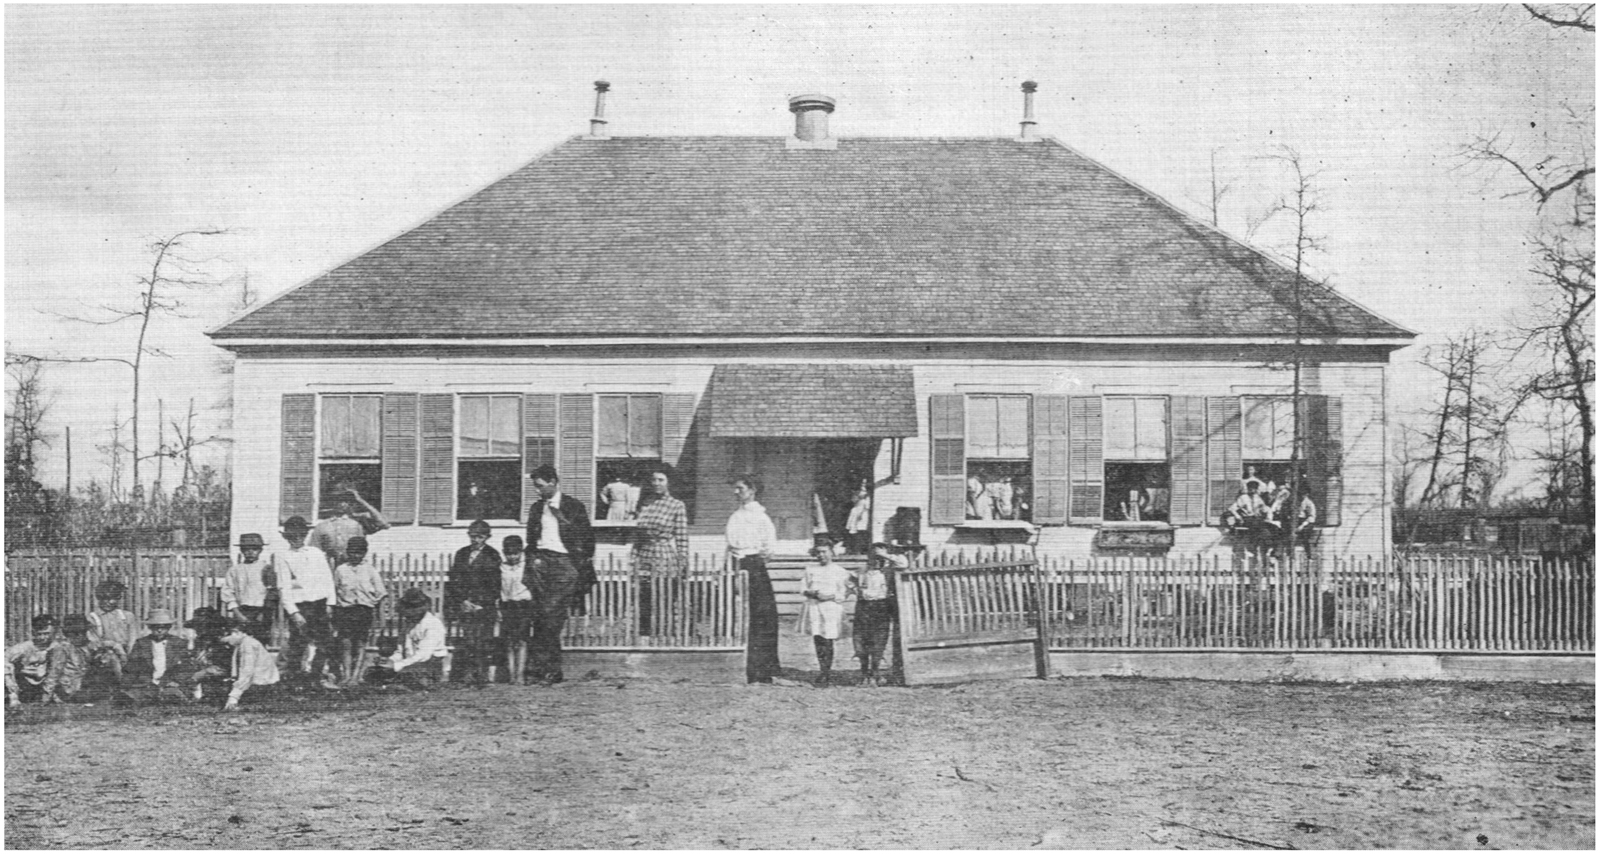 Woodward School at Moonshine Hill, 1910